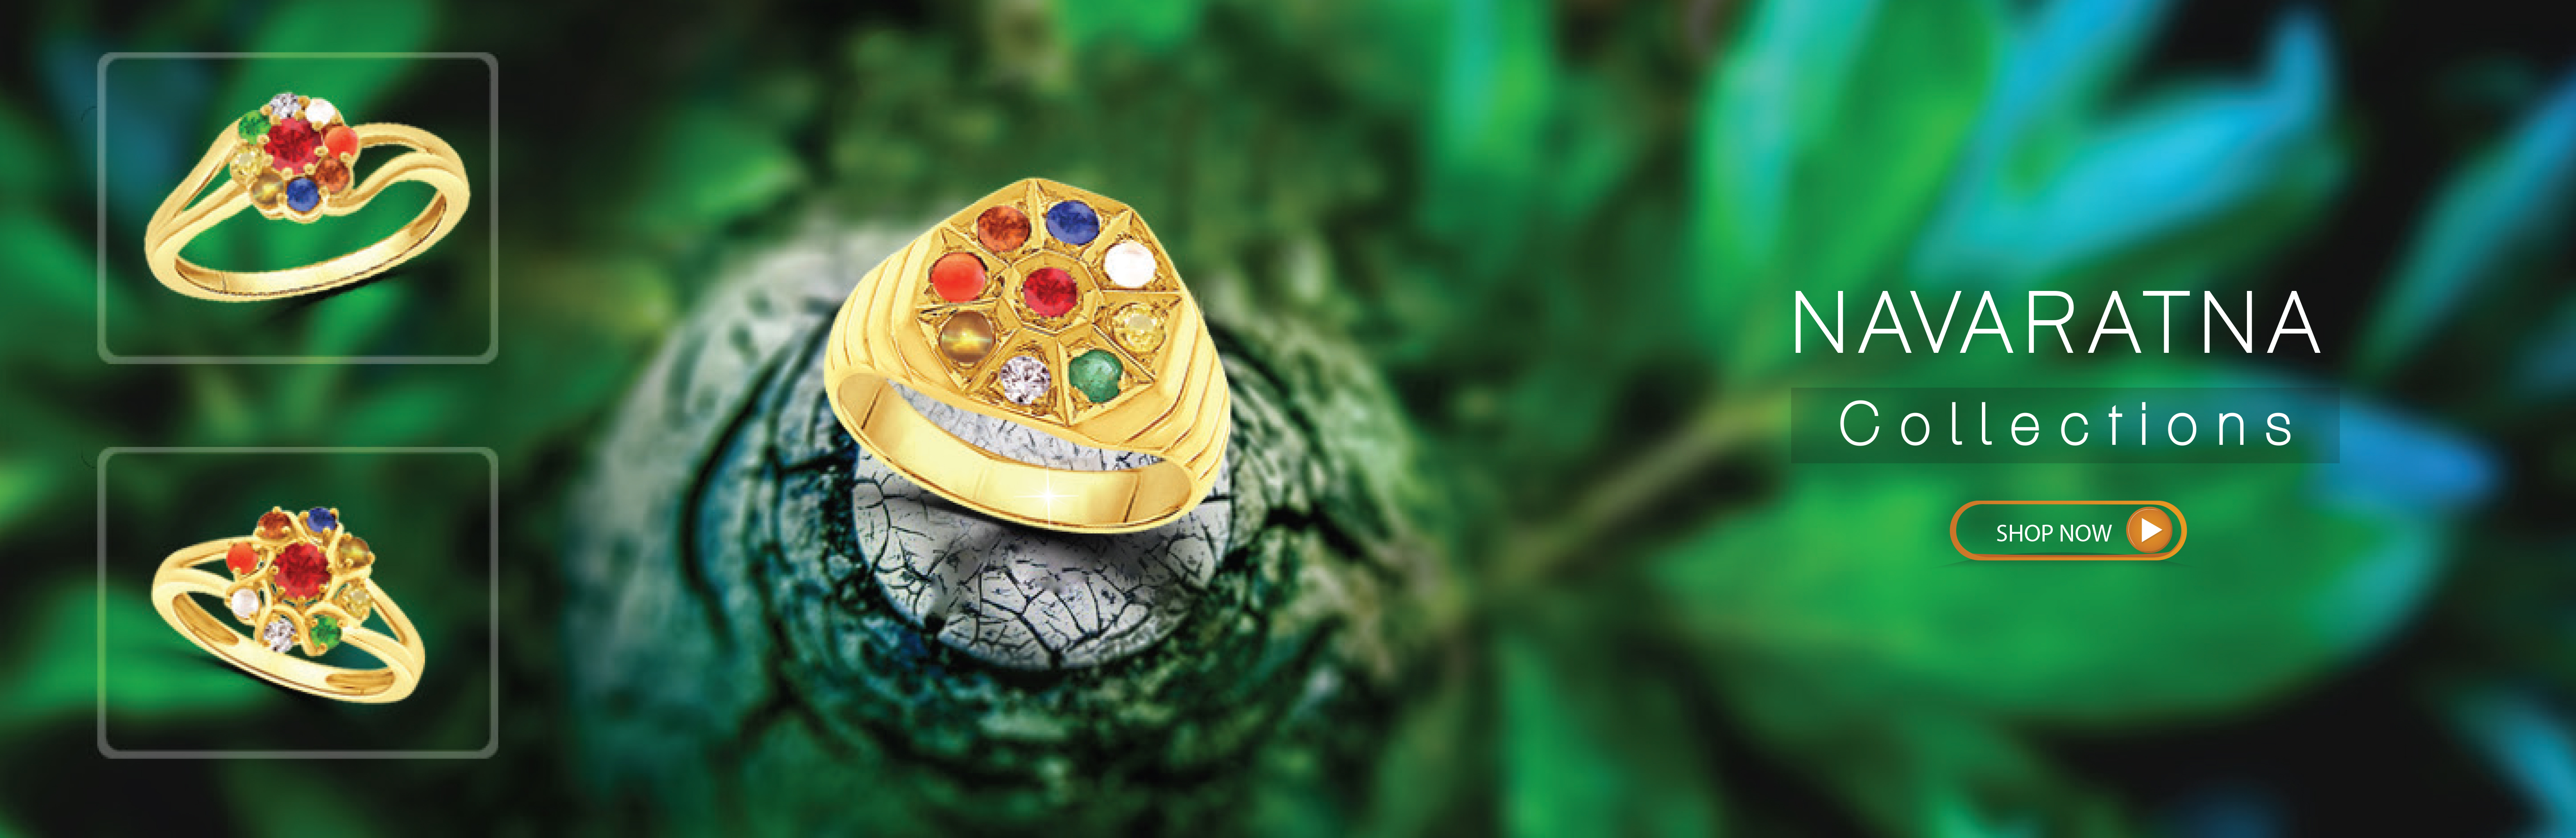 Navaratna Collections by Sky Jewellery